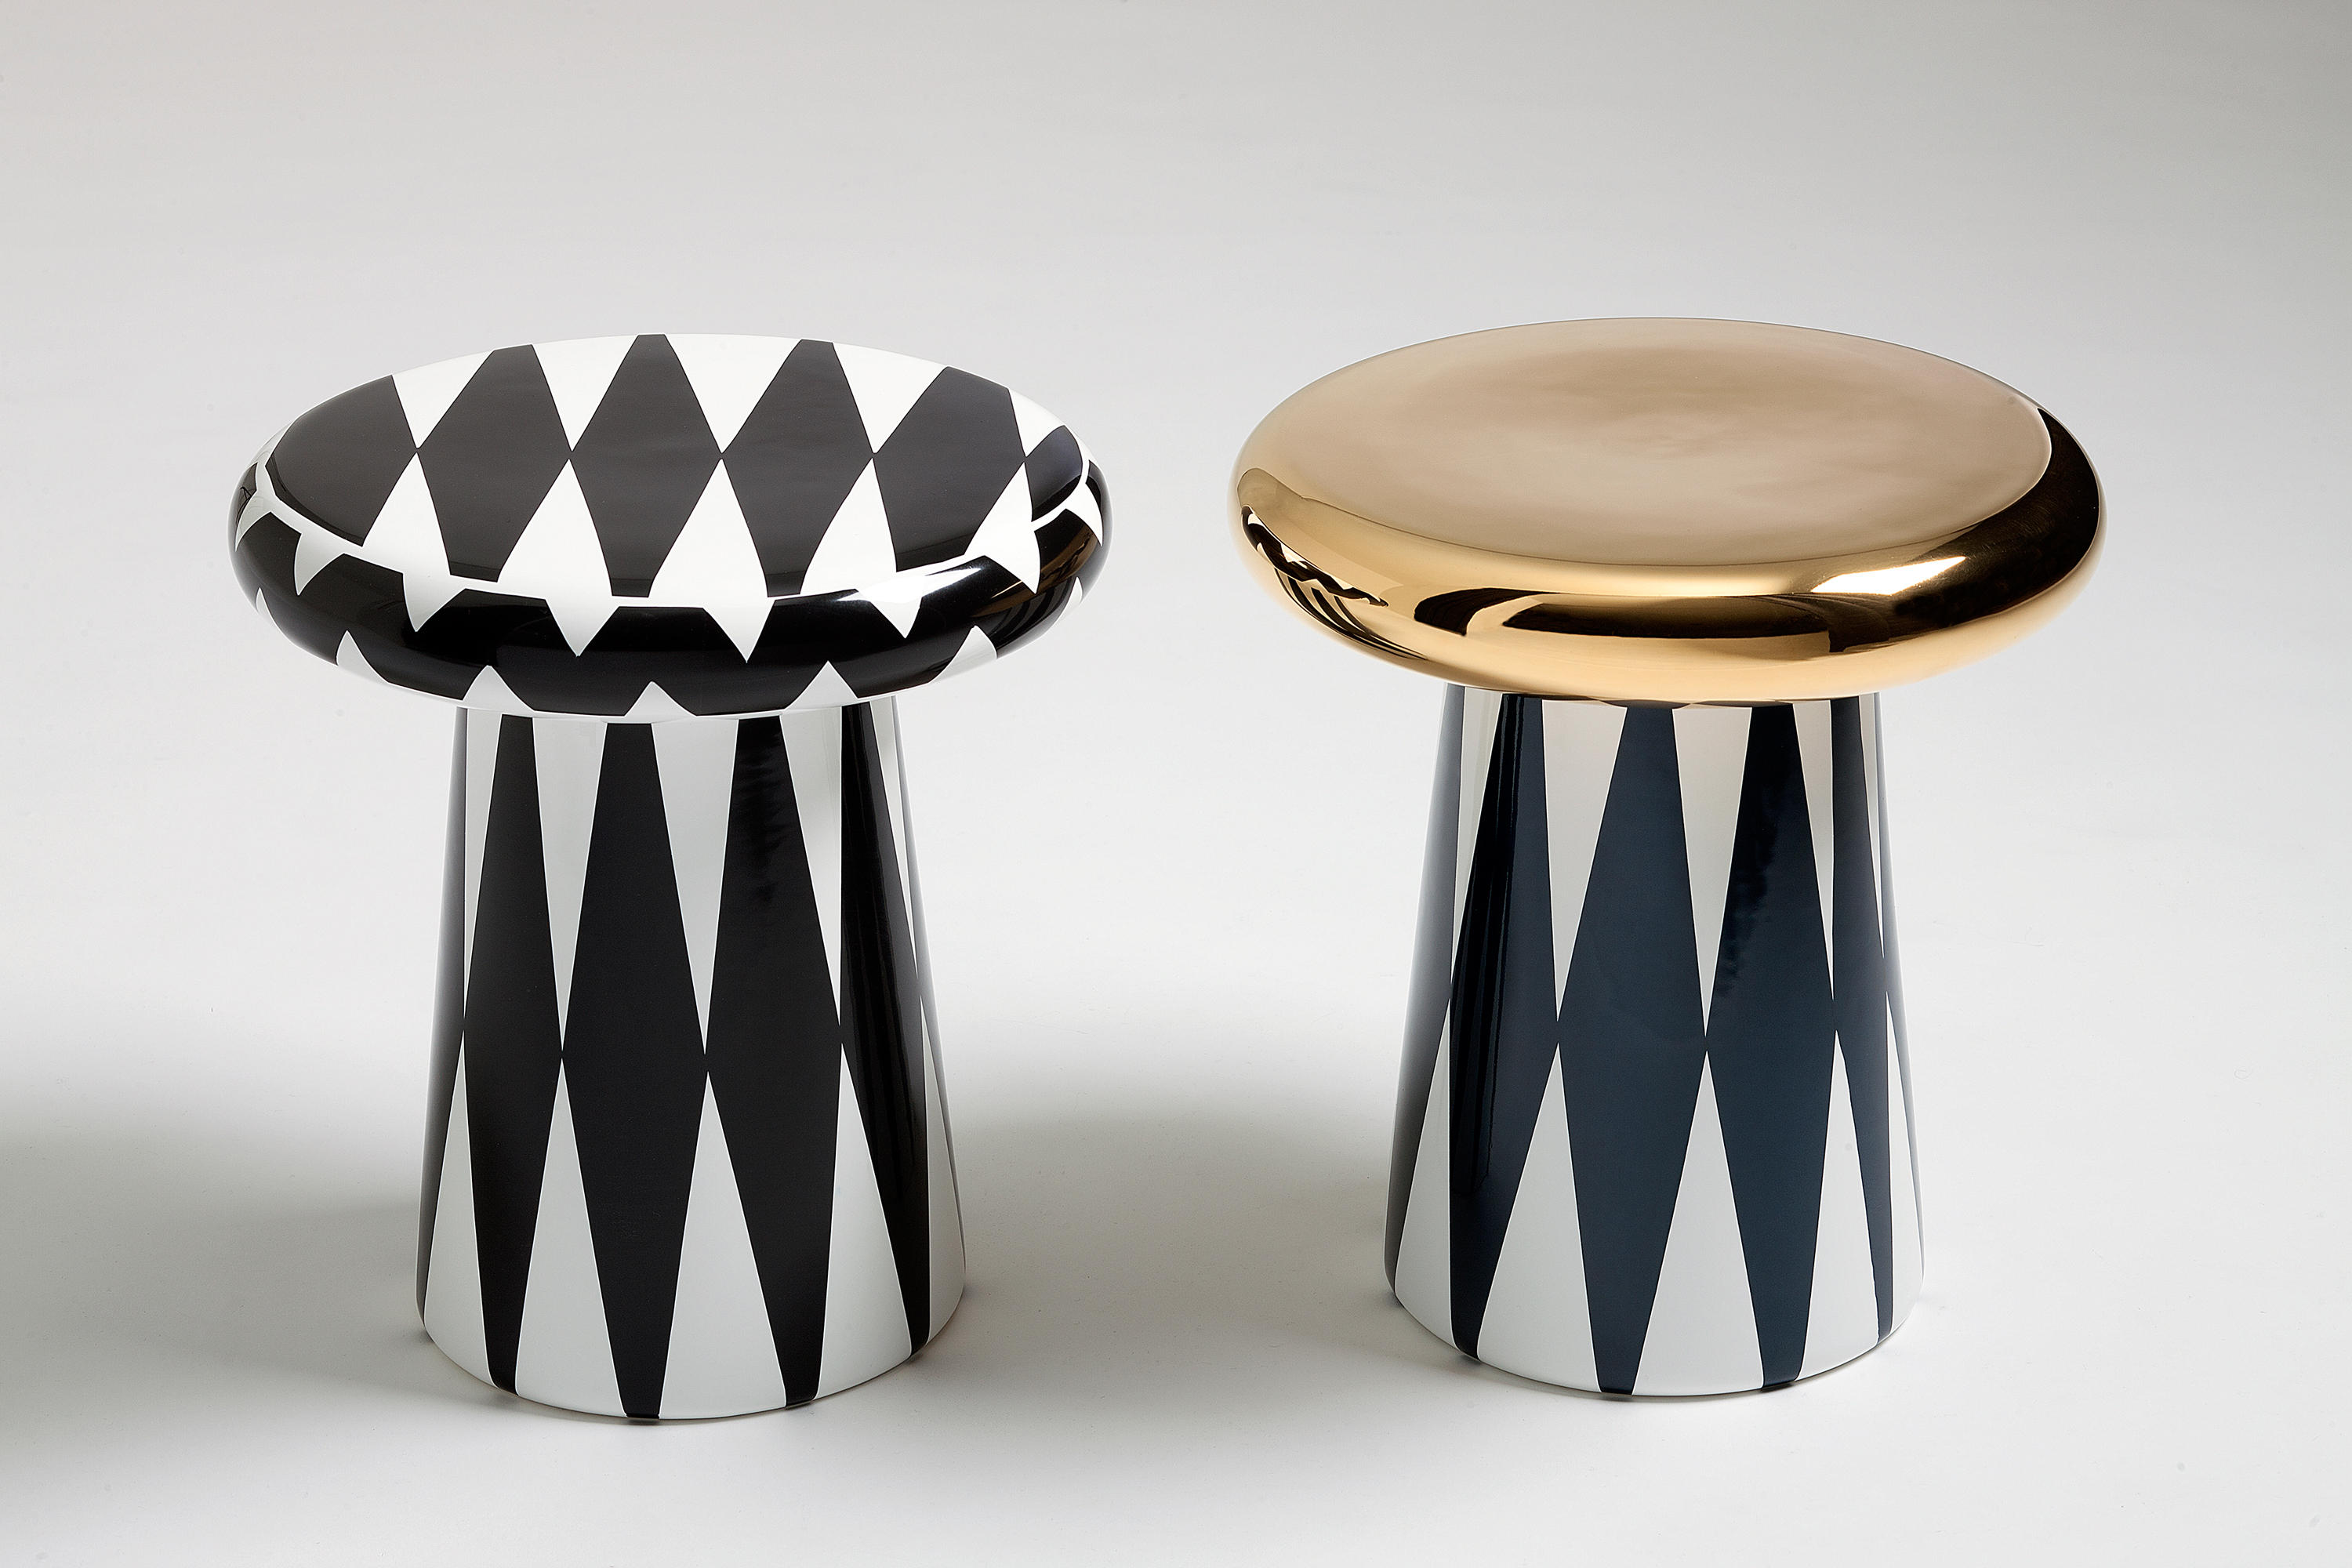 T Table Side Tables From Bosa Architonic